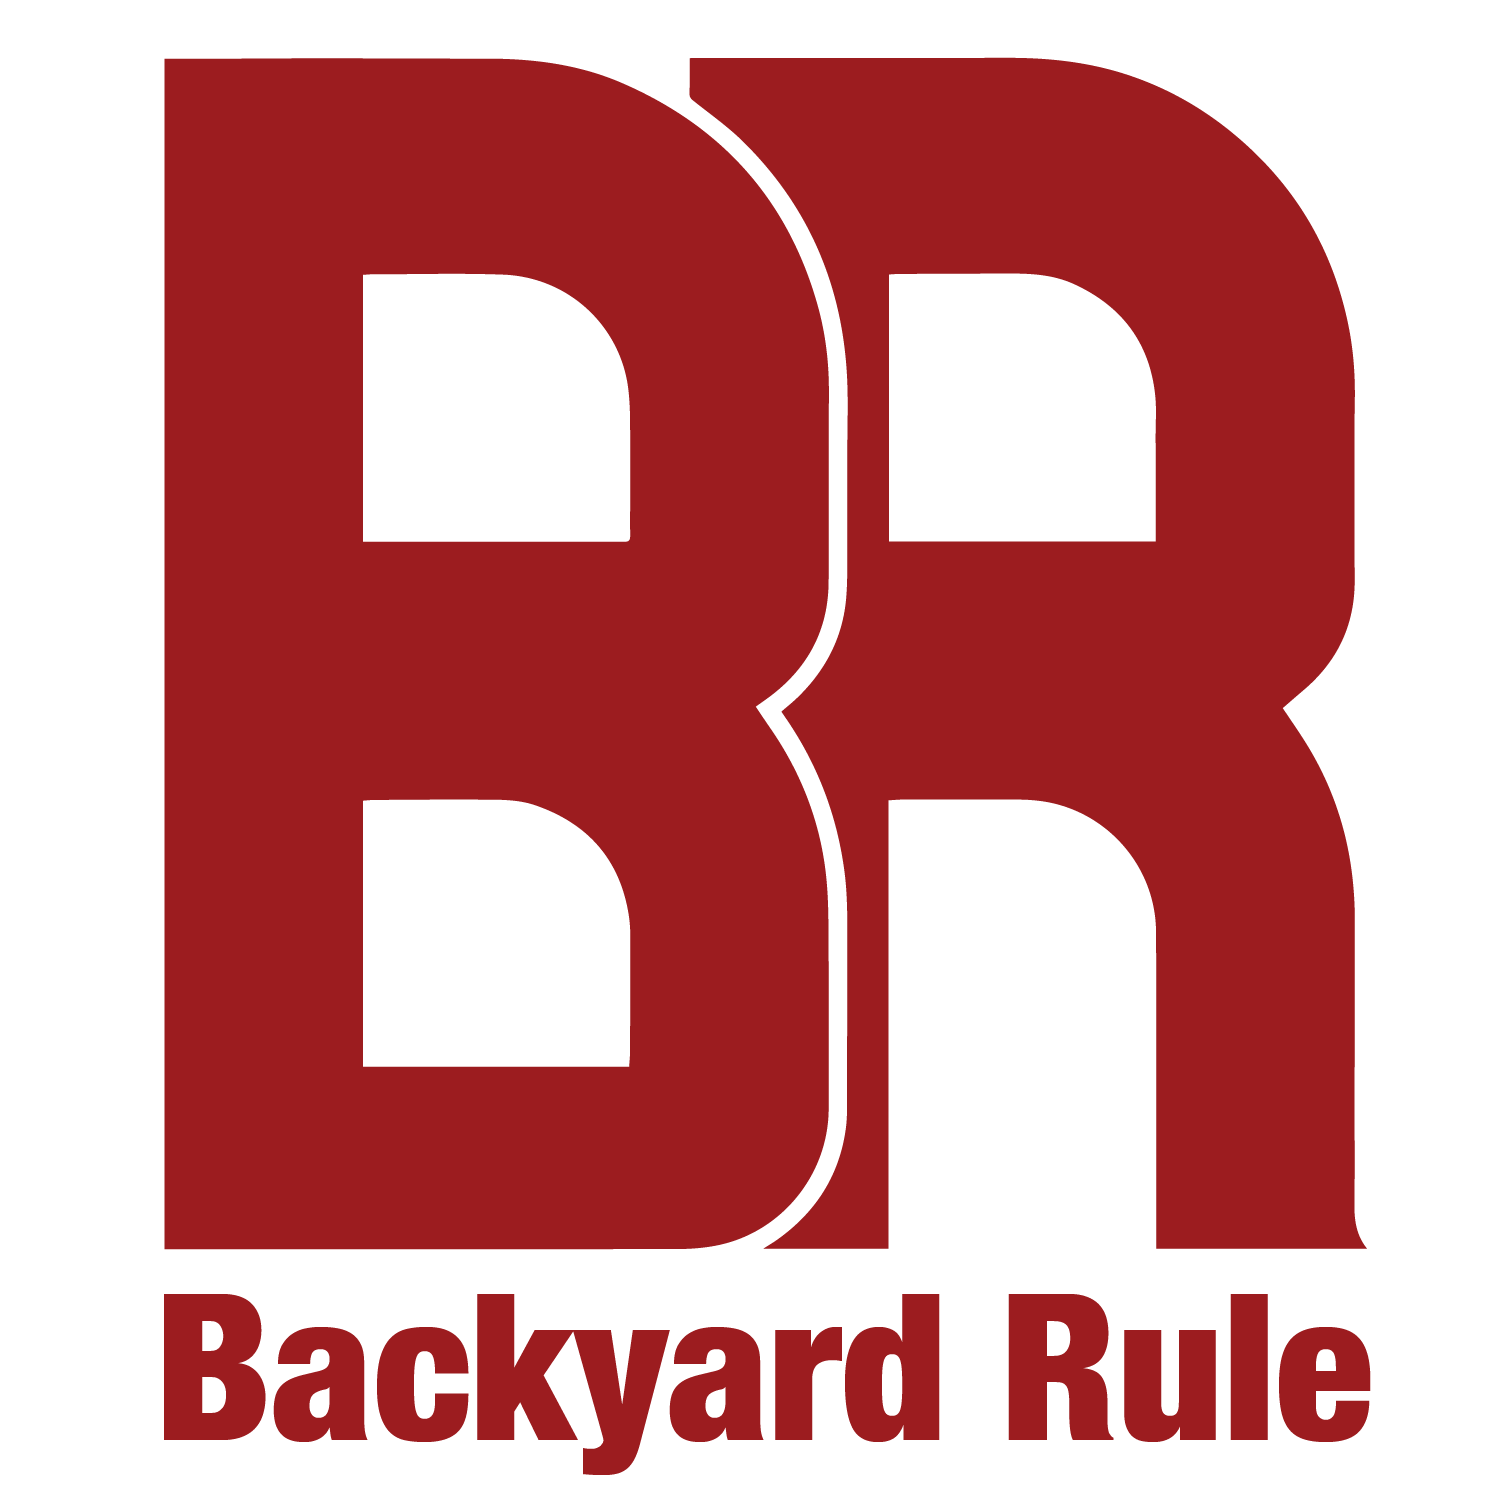 Backyard Rule